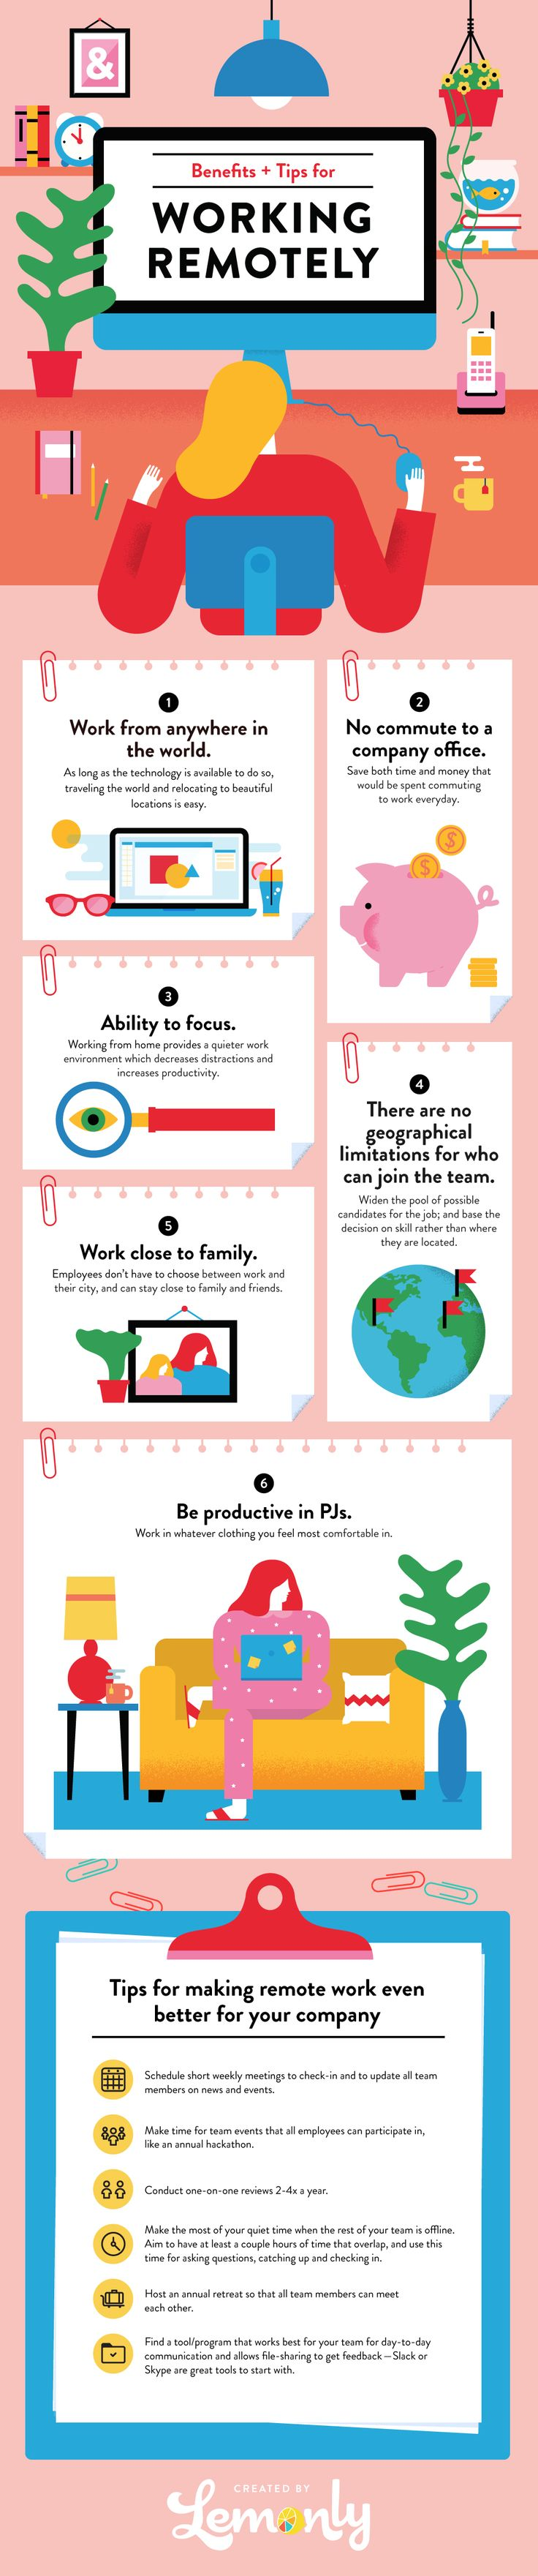 How to Work from Home Tips Infographic | Lemonly Infographic Design #MobileWalletMarketing